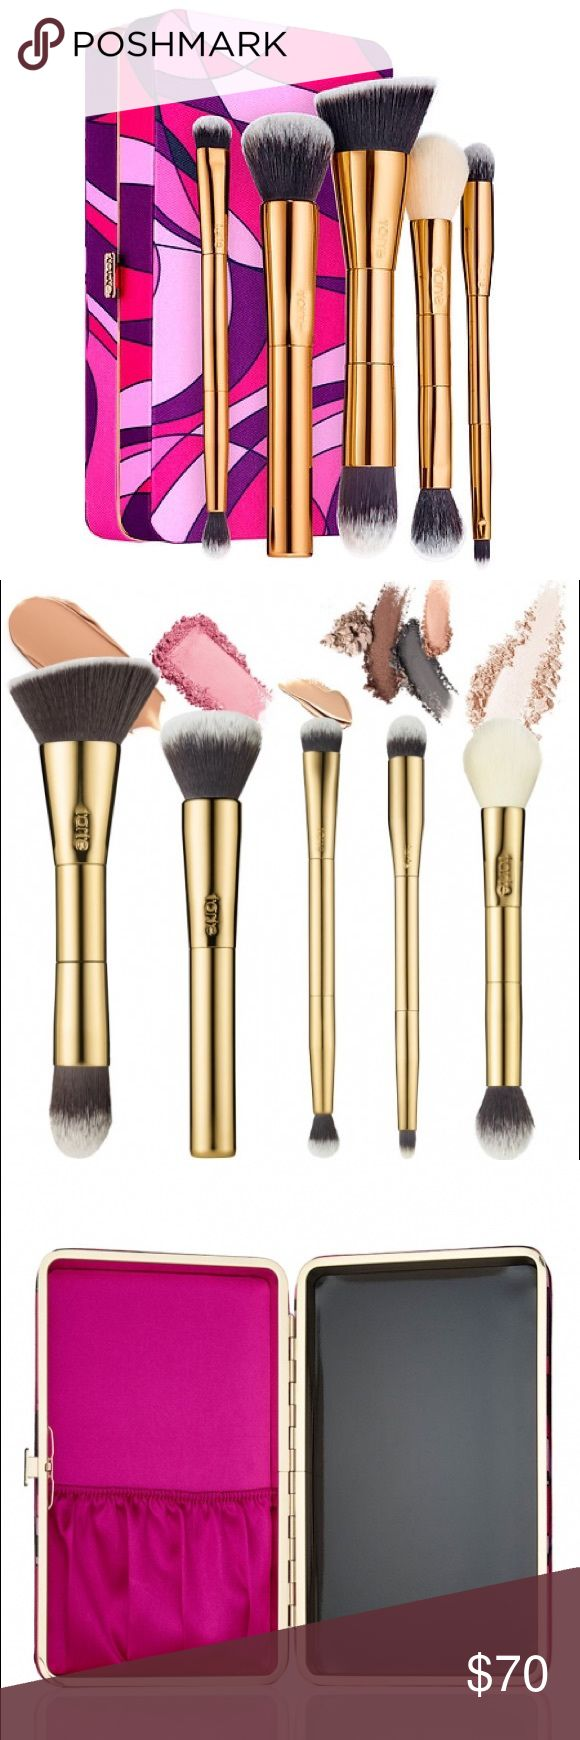 tarte tarteist toolbox 5-pc brush set & palette tarte tarteist toolbox 5-pc brush set & palette NWT *SOLD OUT* Limited Edition - Includes: double-ended foundation brush, multi-use complexion brush, double-ended concealer brush, double-ended cheek & highlighter brush, double-ended eyeshadow brush, convertible brush case and customizable magnetic palette (z-palette). Can also be a purse/clutch. Sephora Makeup Brushes & Tools